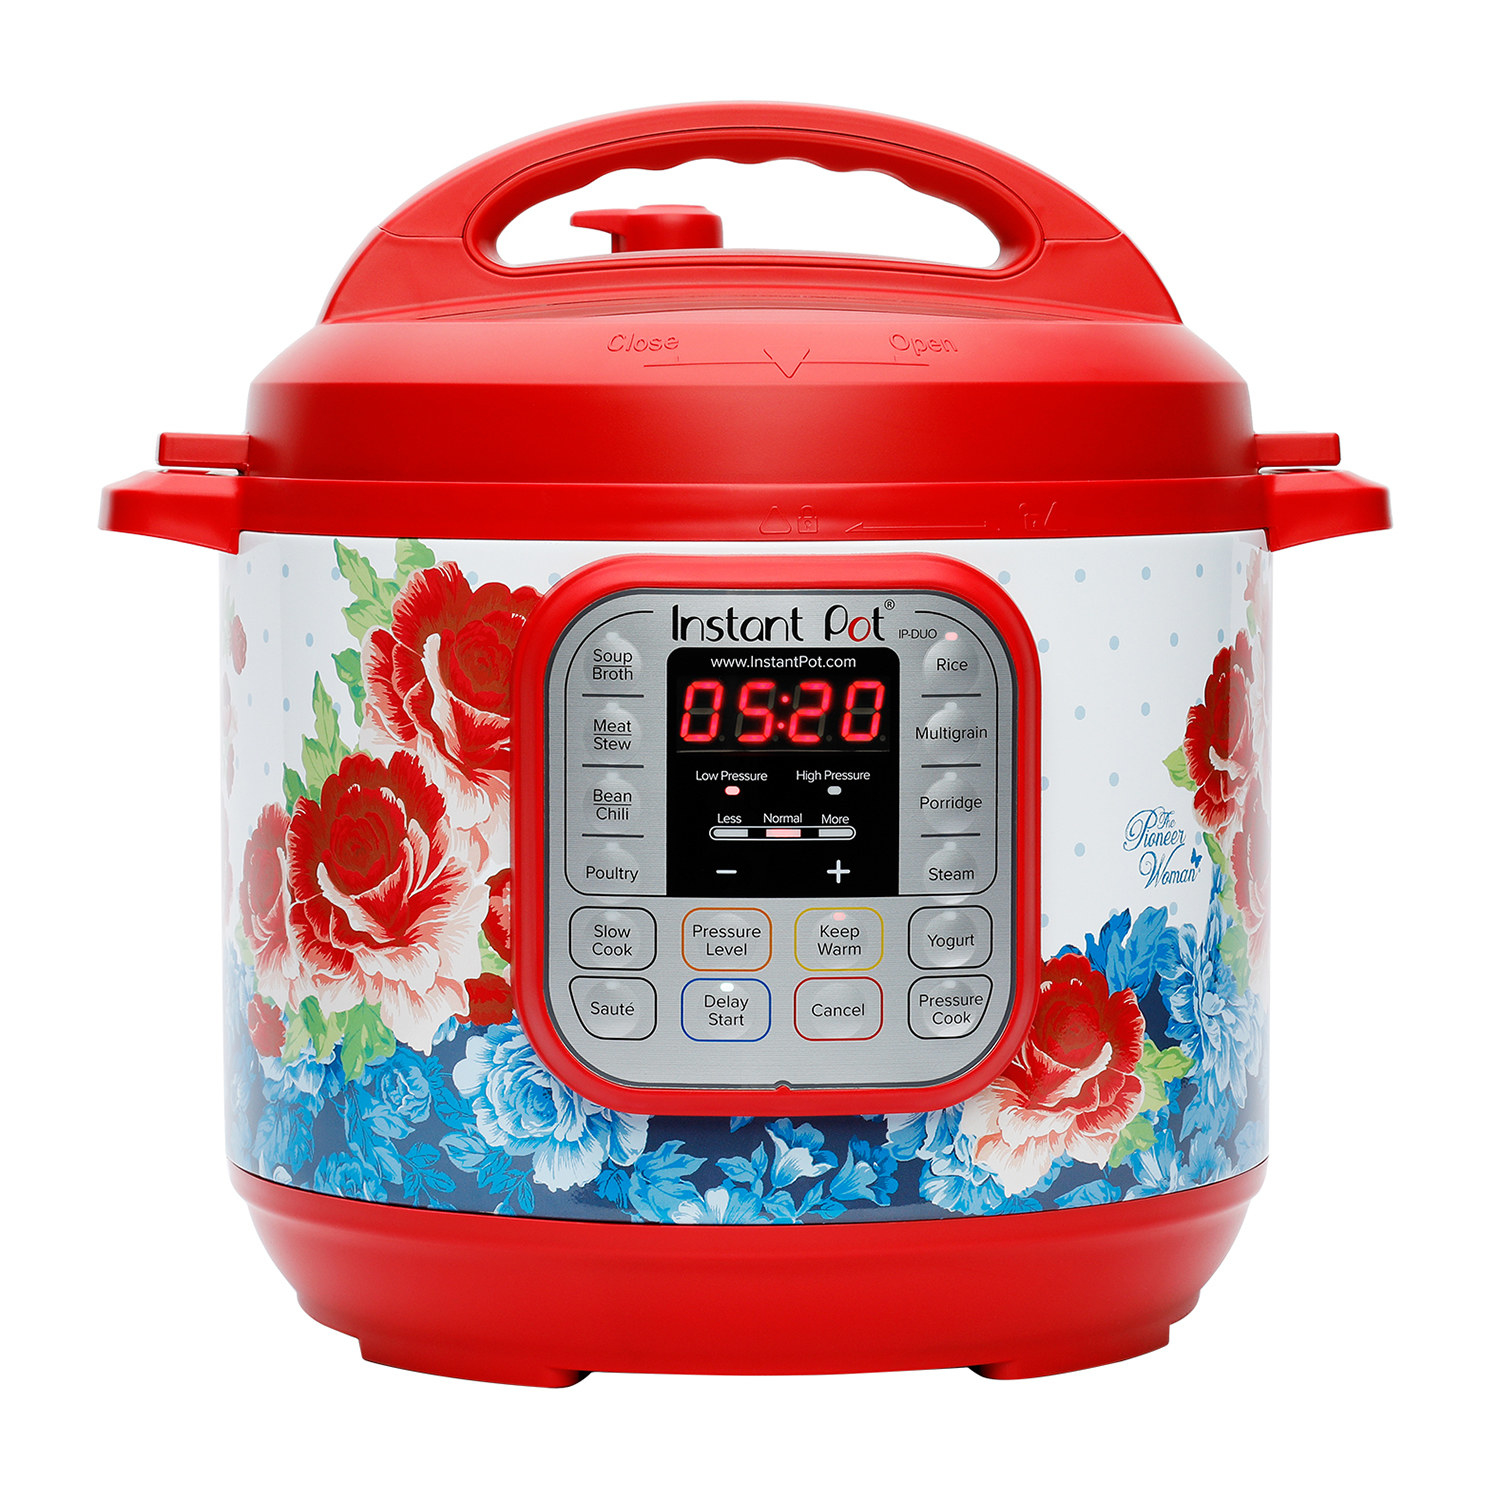 a red instant pot with a blue and red floral design on it